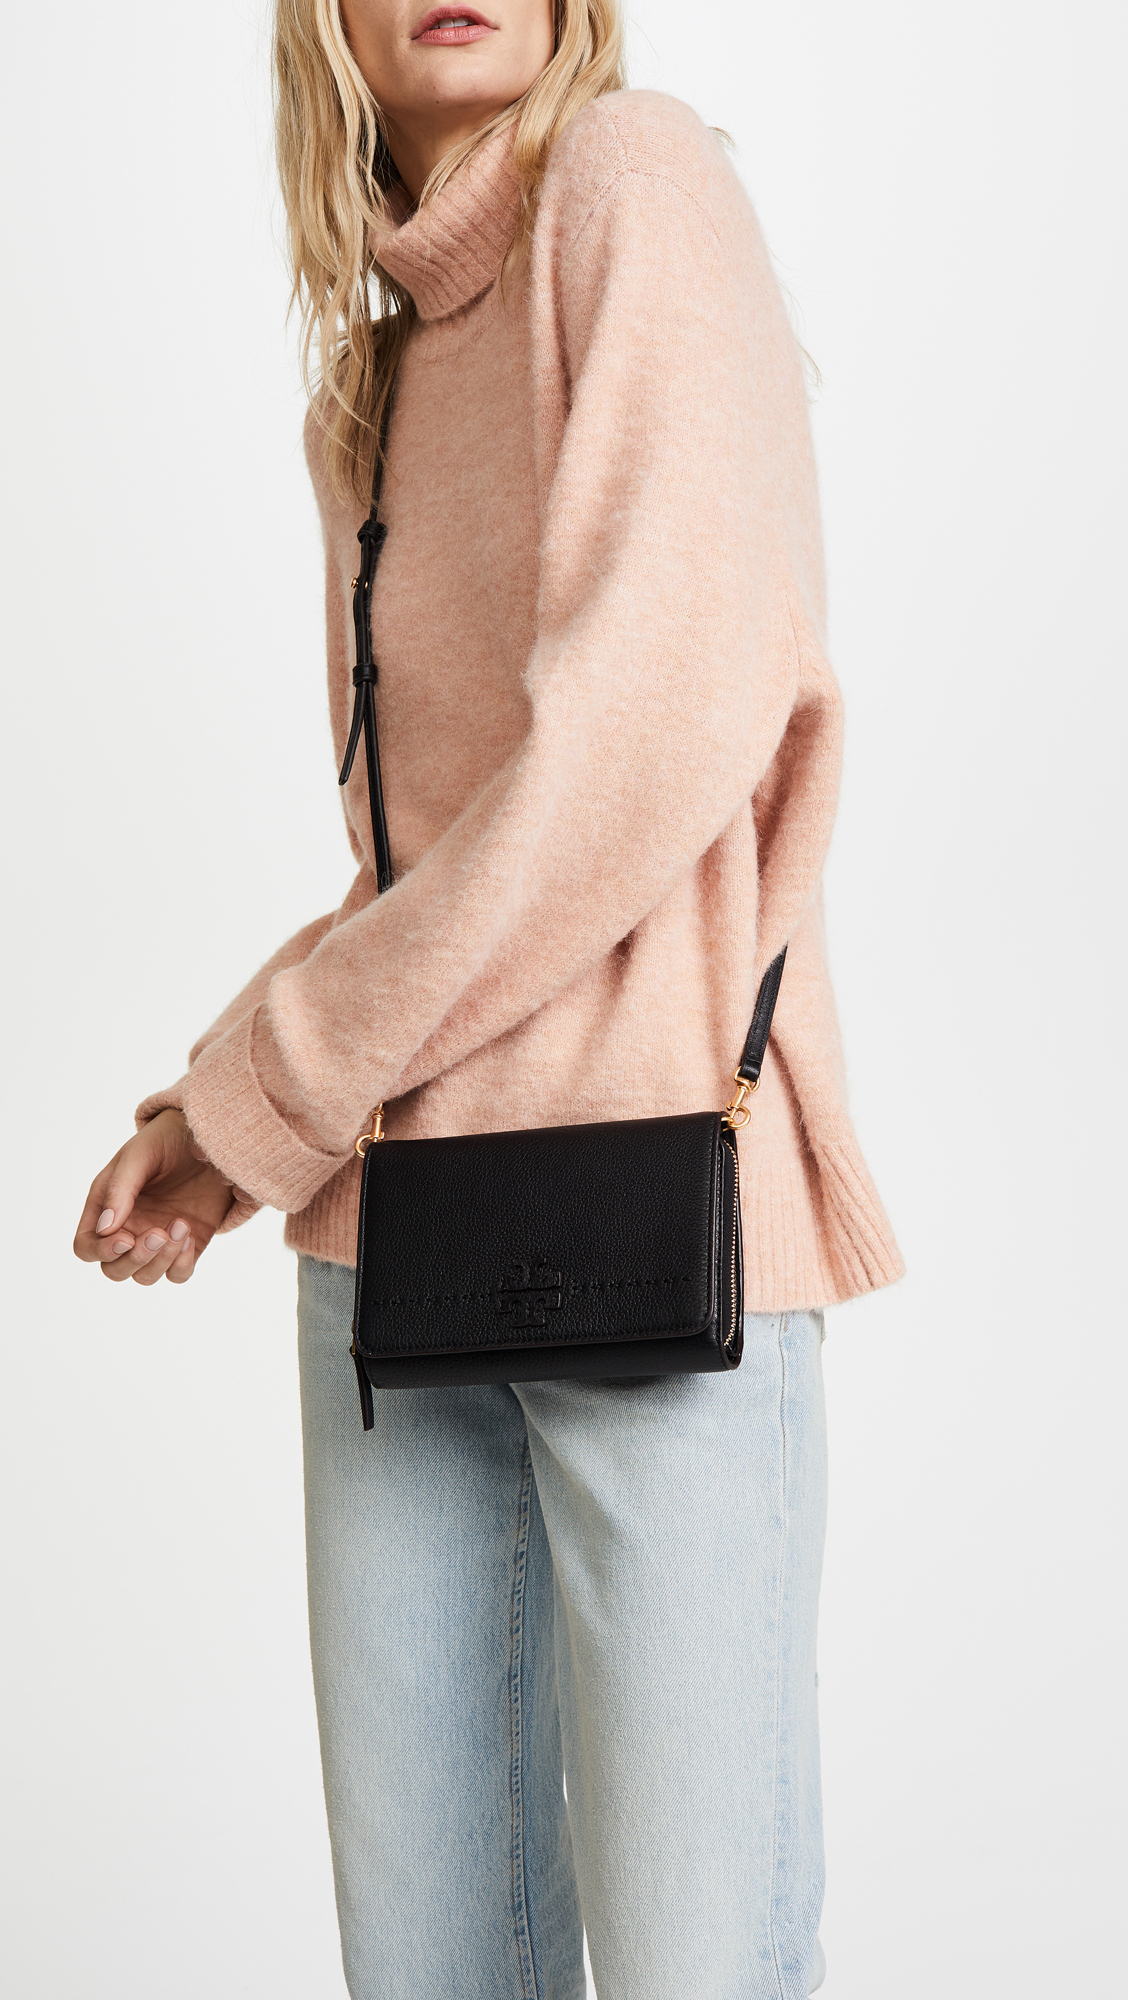 トリーバーチ Mcgraw Flat Wallet Cross Body Bag 財布